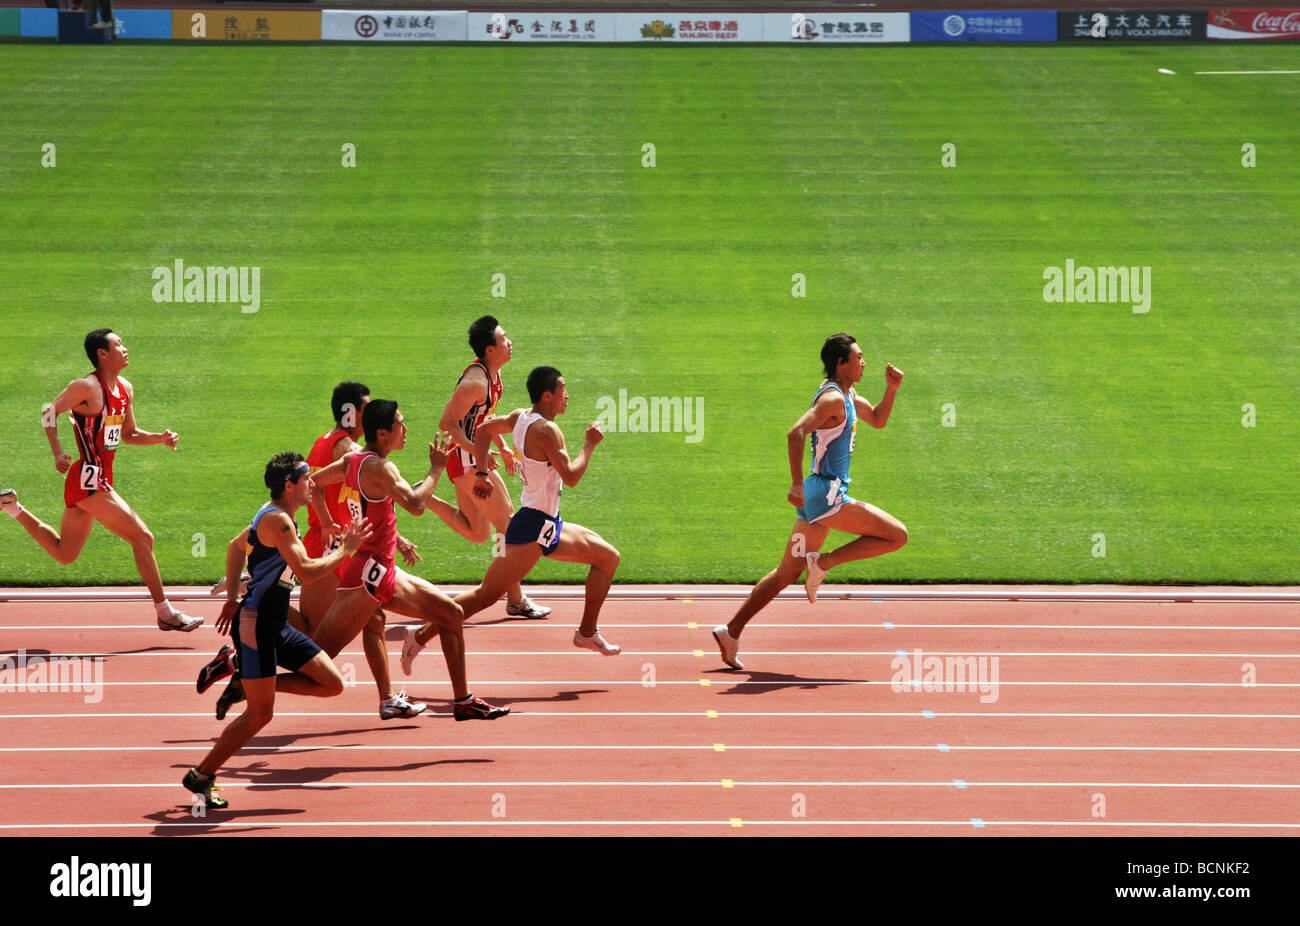 Chinese atheletes competing in 100m run during Good Luck Beijing Game in Bird's Nest, Beijing, China